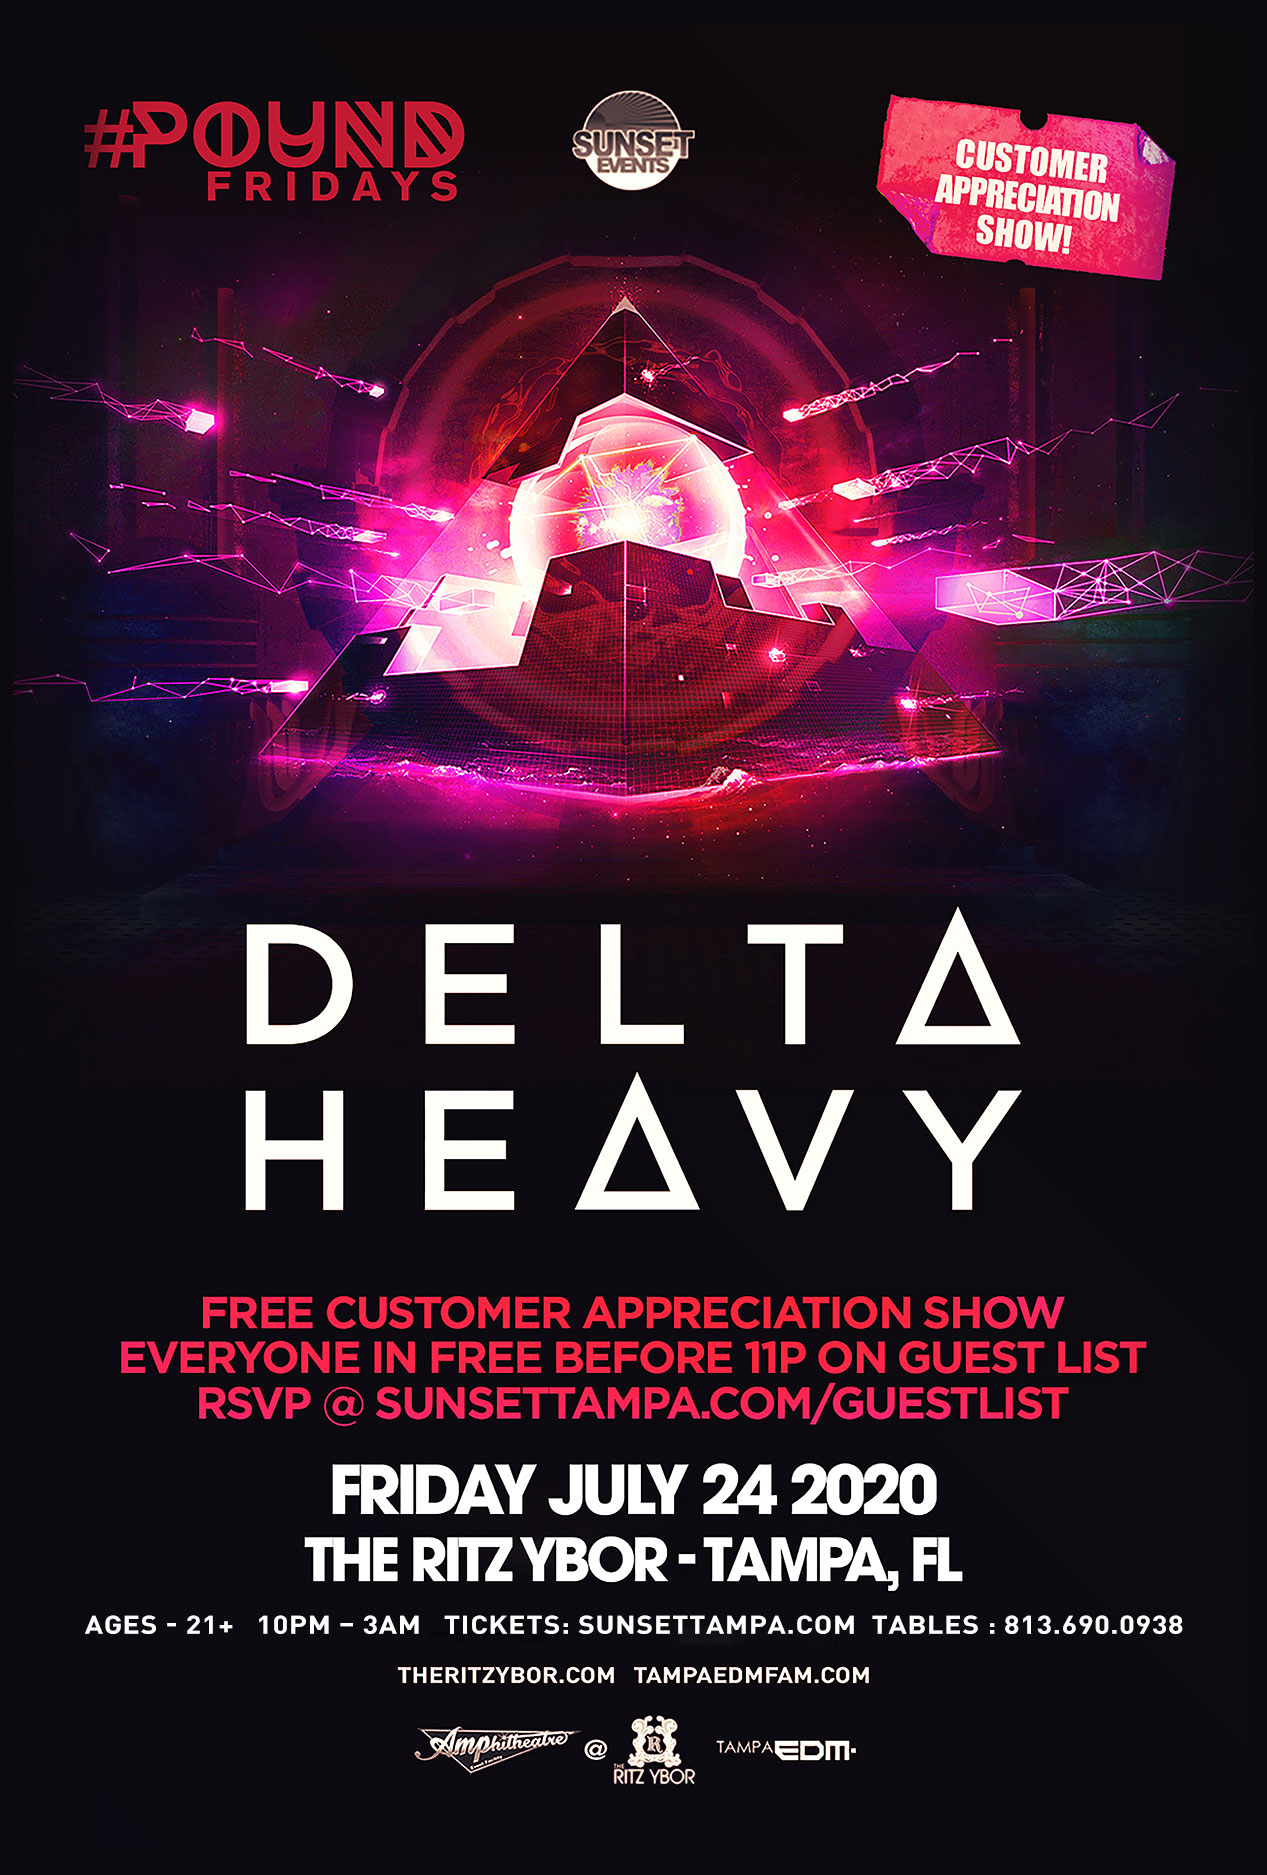 Delta Heavy – Free Guest List – #POUND Fridays at The RITZ Ybor – 7/24/2020